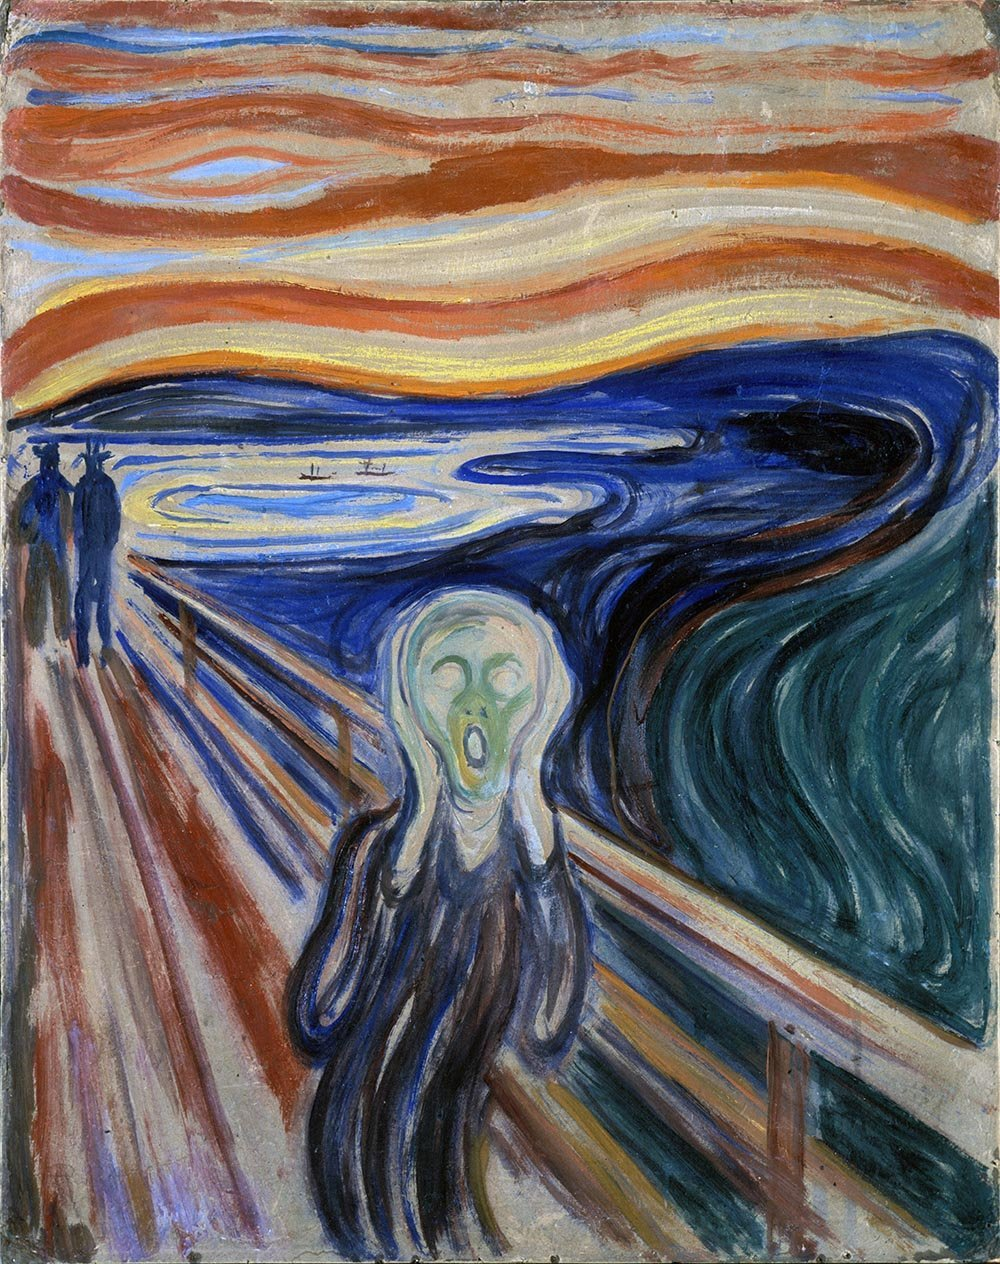 100% Hand Painted Oil on Canvas - Munch - The Scream - 30x40 Inch